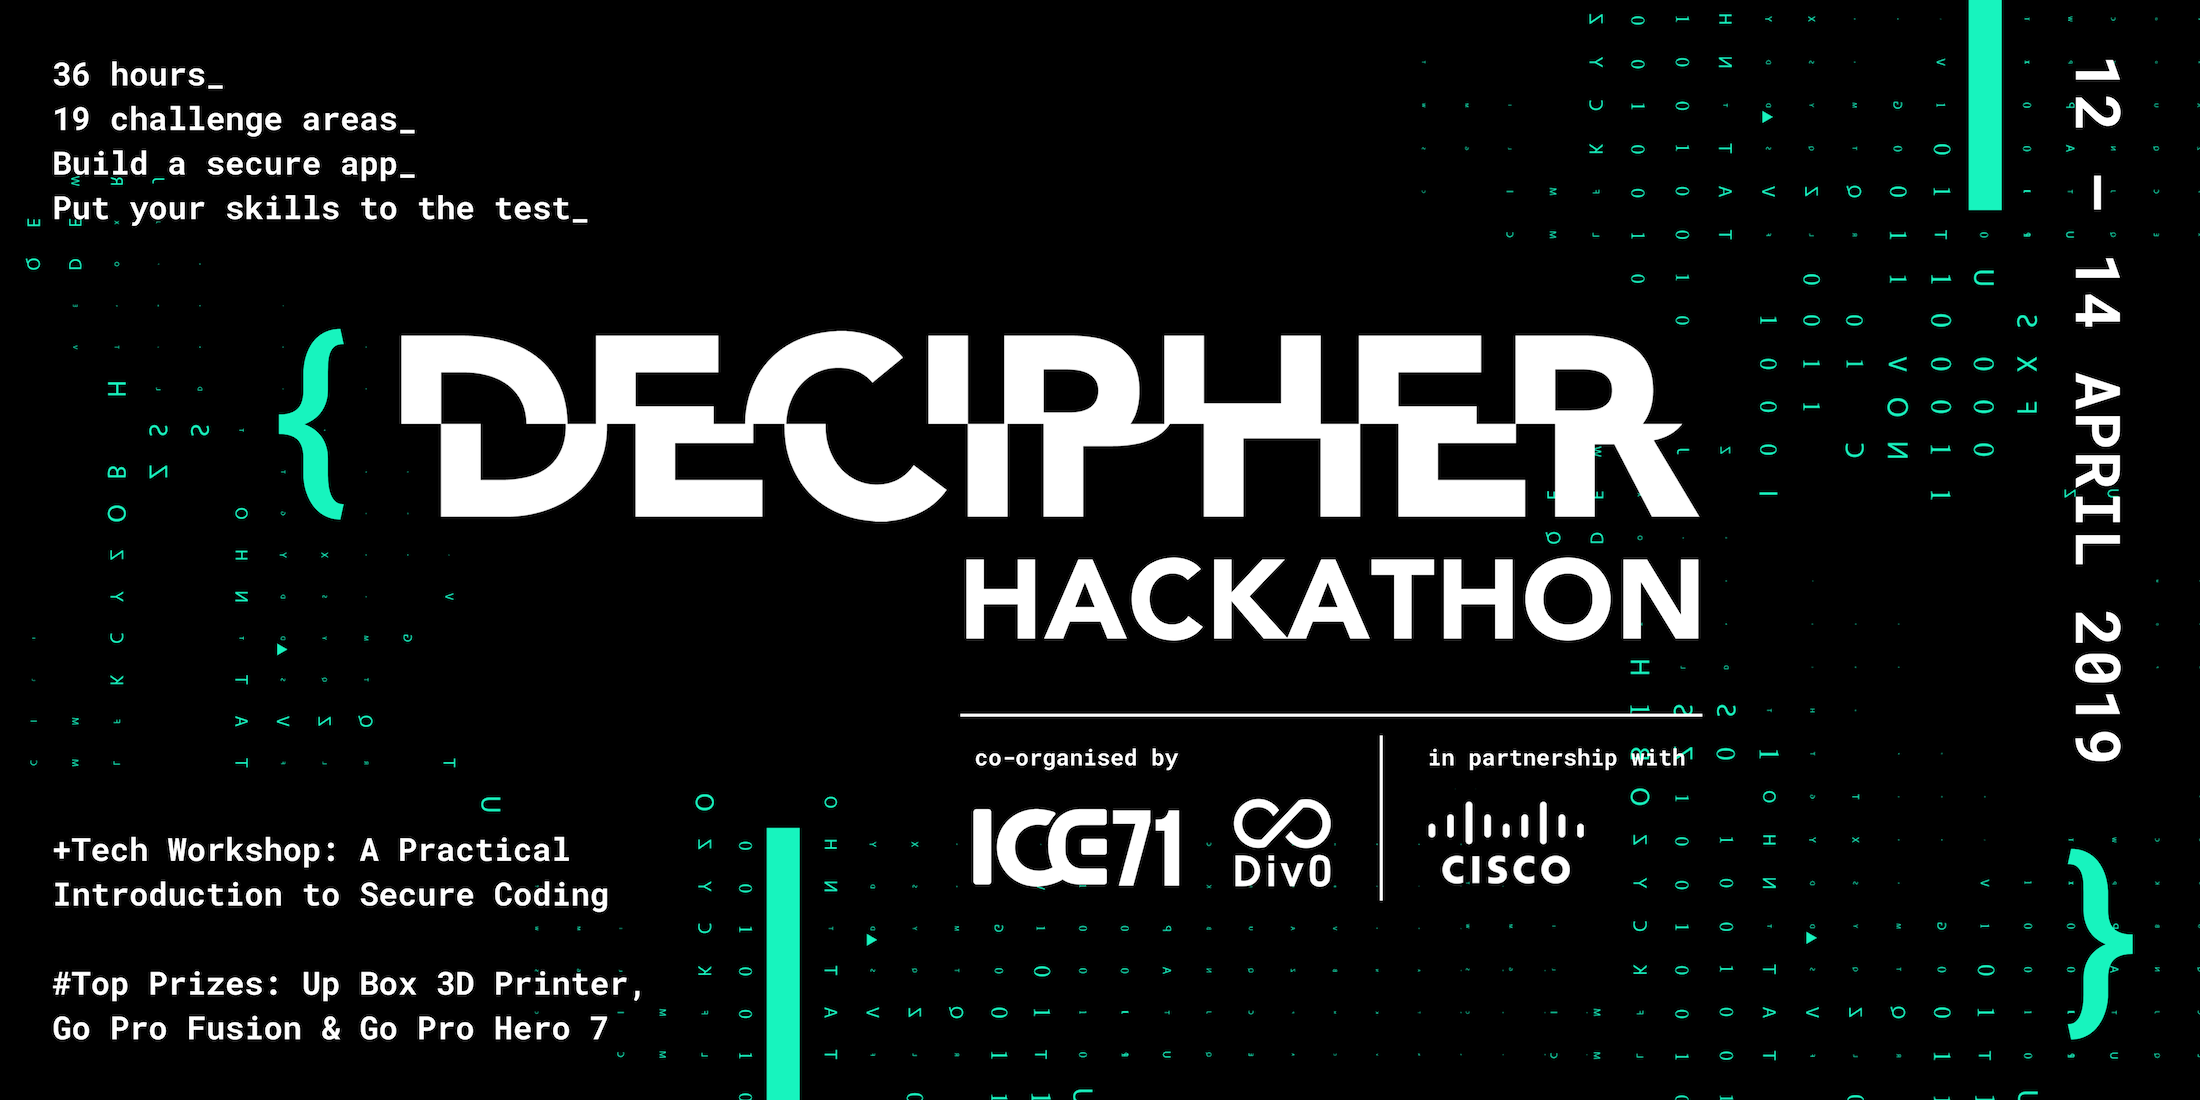 {DECIPHER} Hackathon – 12 to 14 April 2019